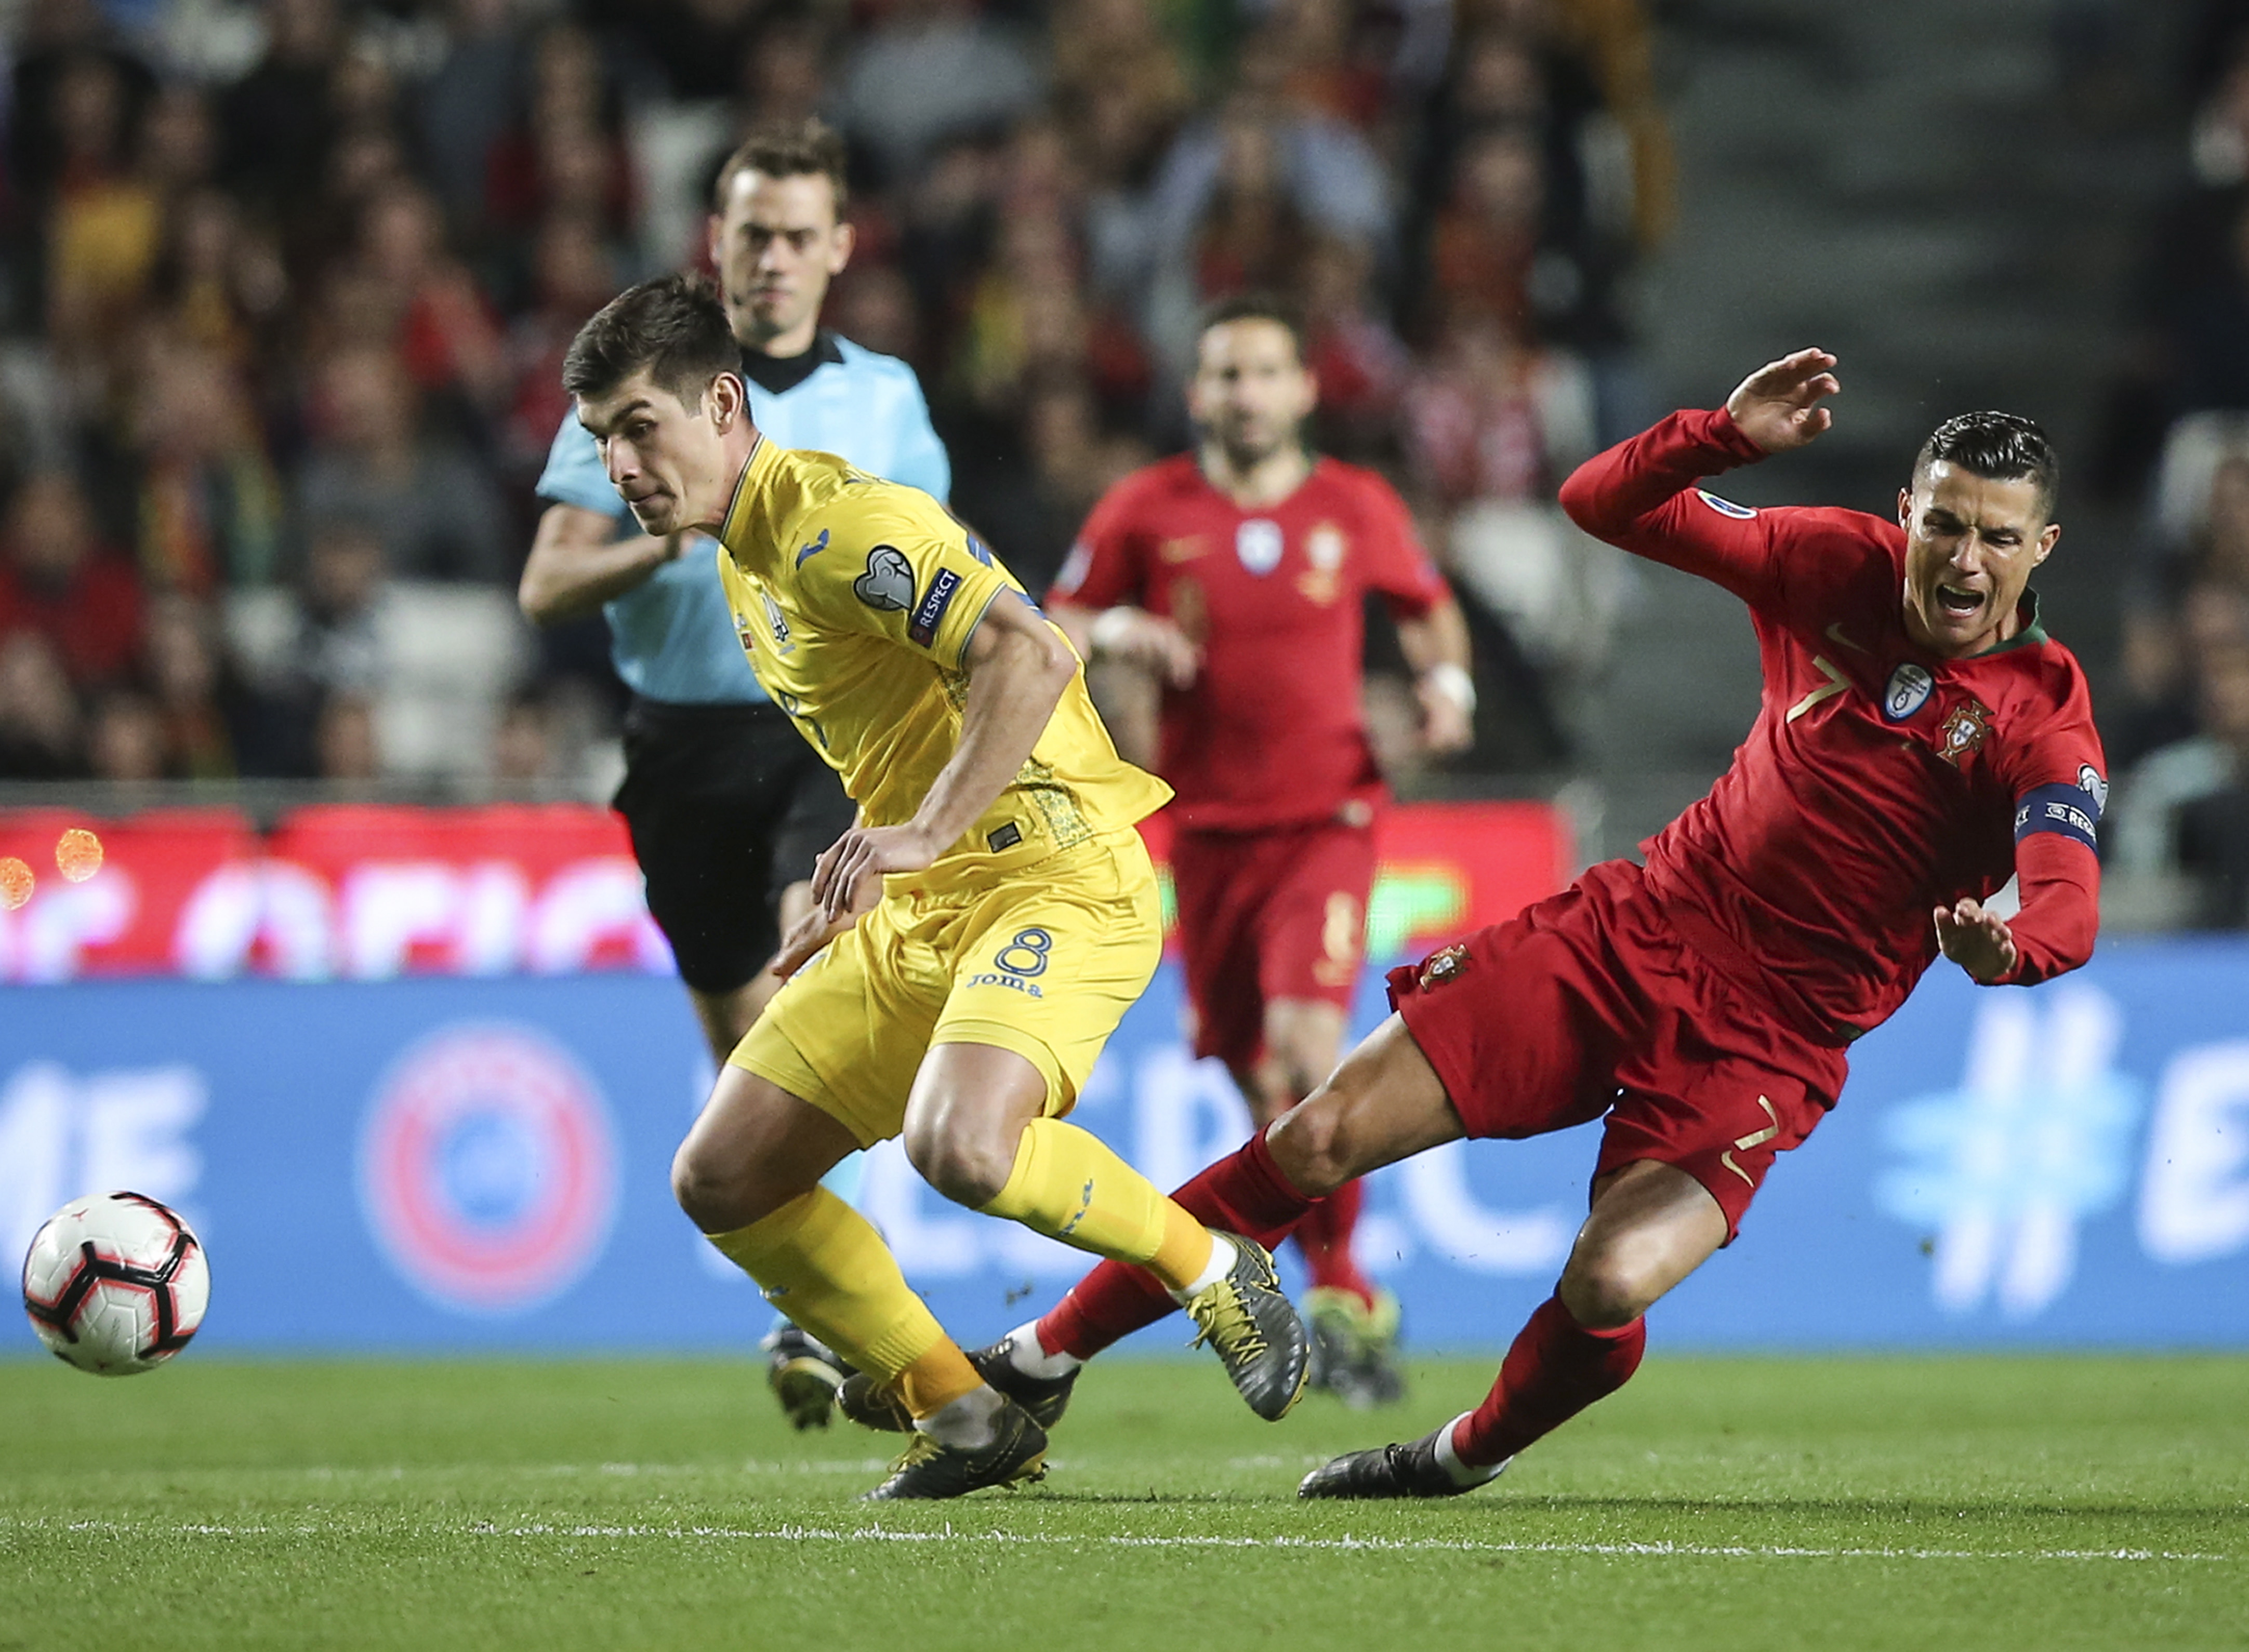 Ronaldo in again as Portugal faces Serbia challenge